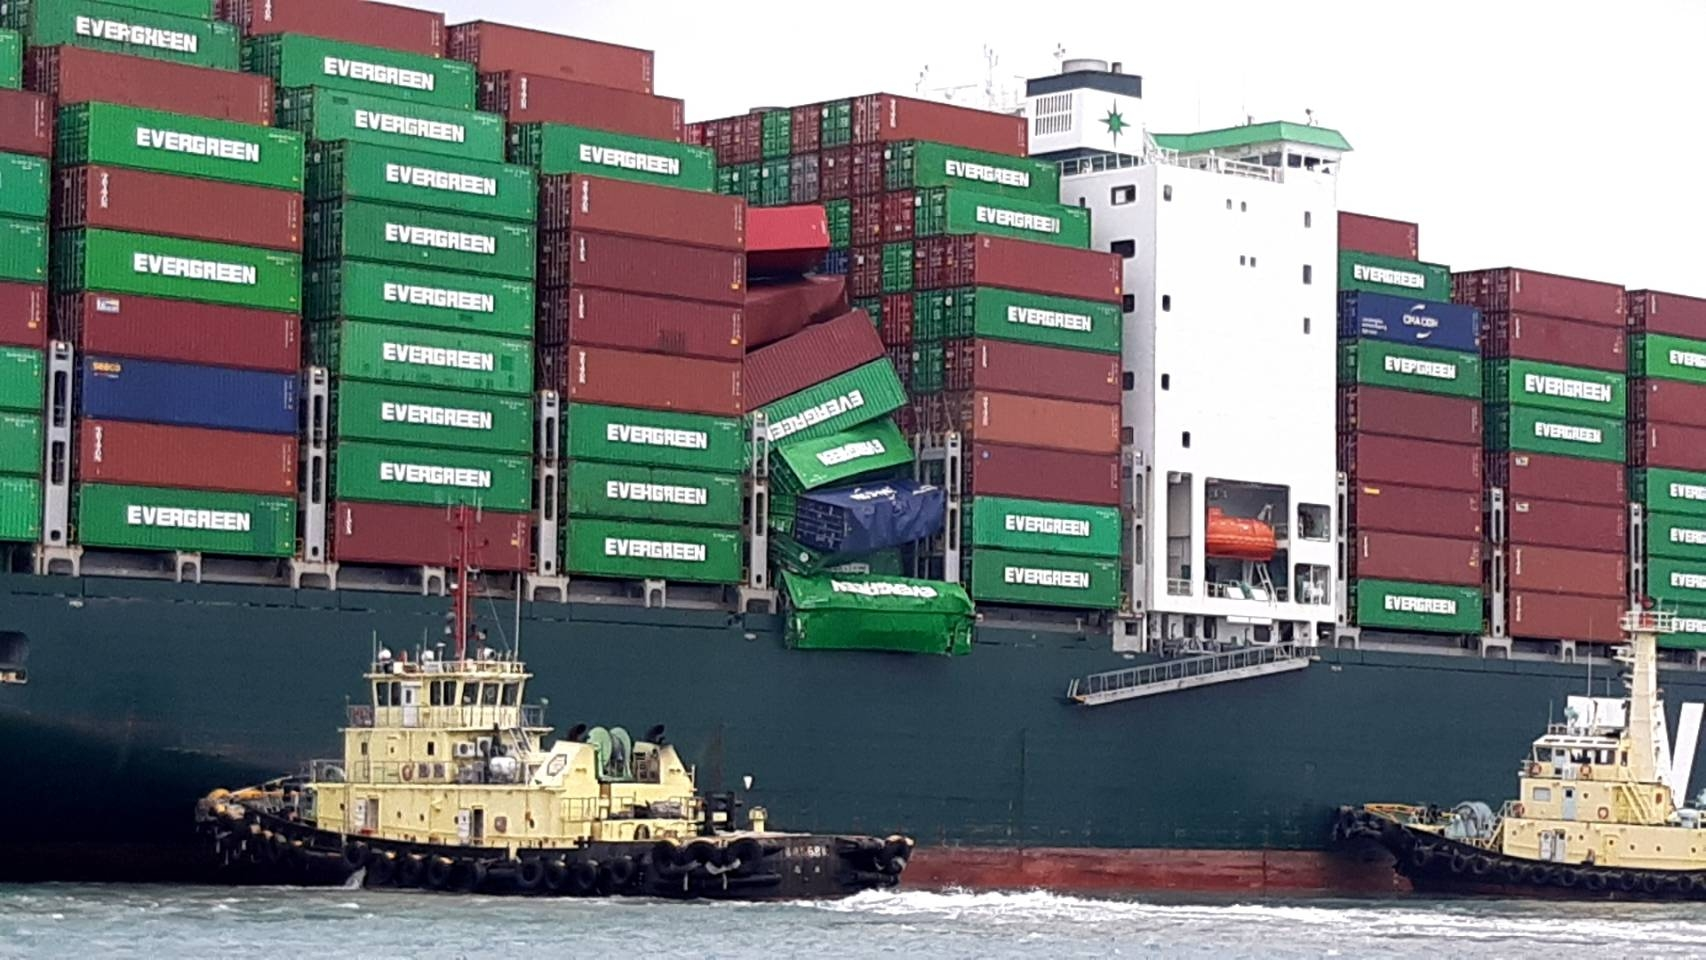 Ever Liberal - containers falling into the sea